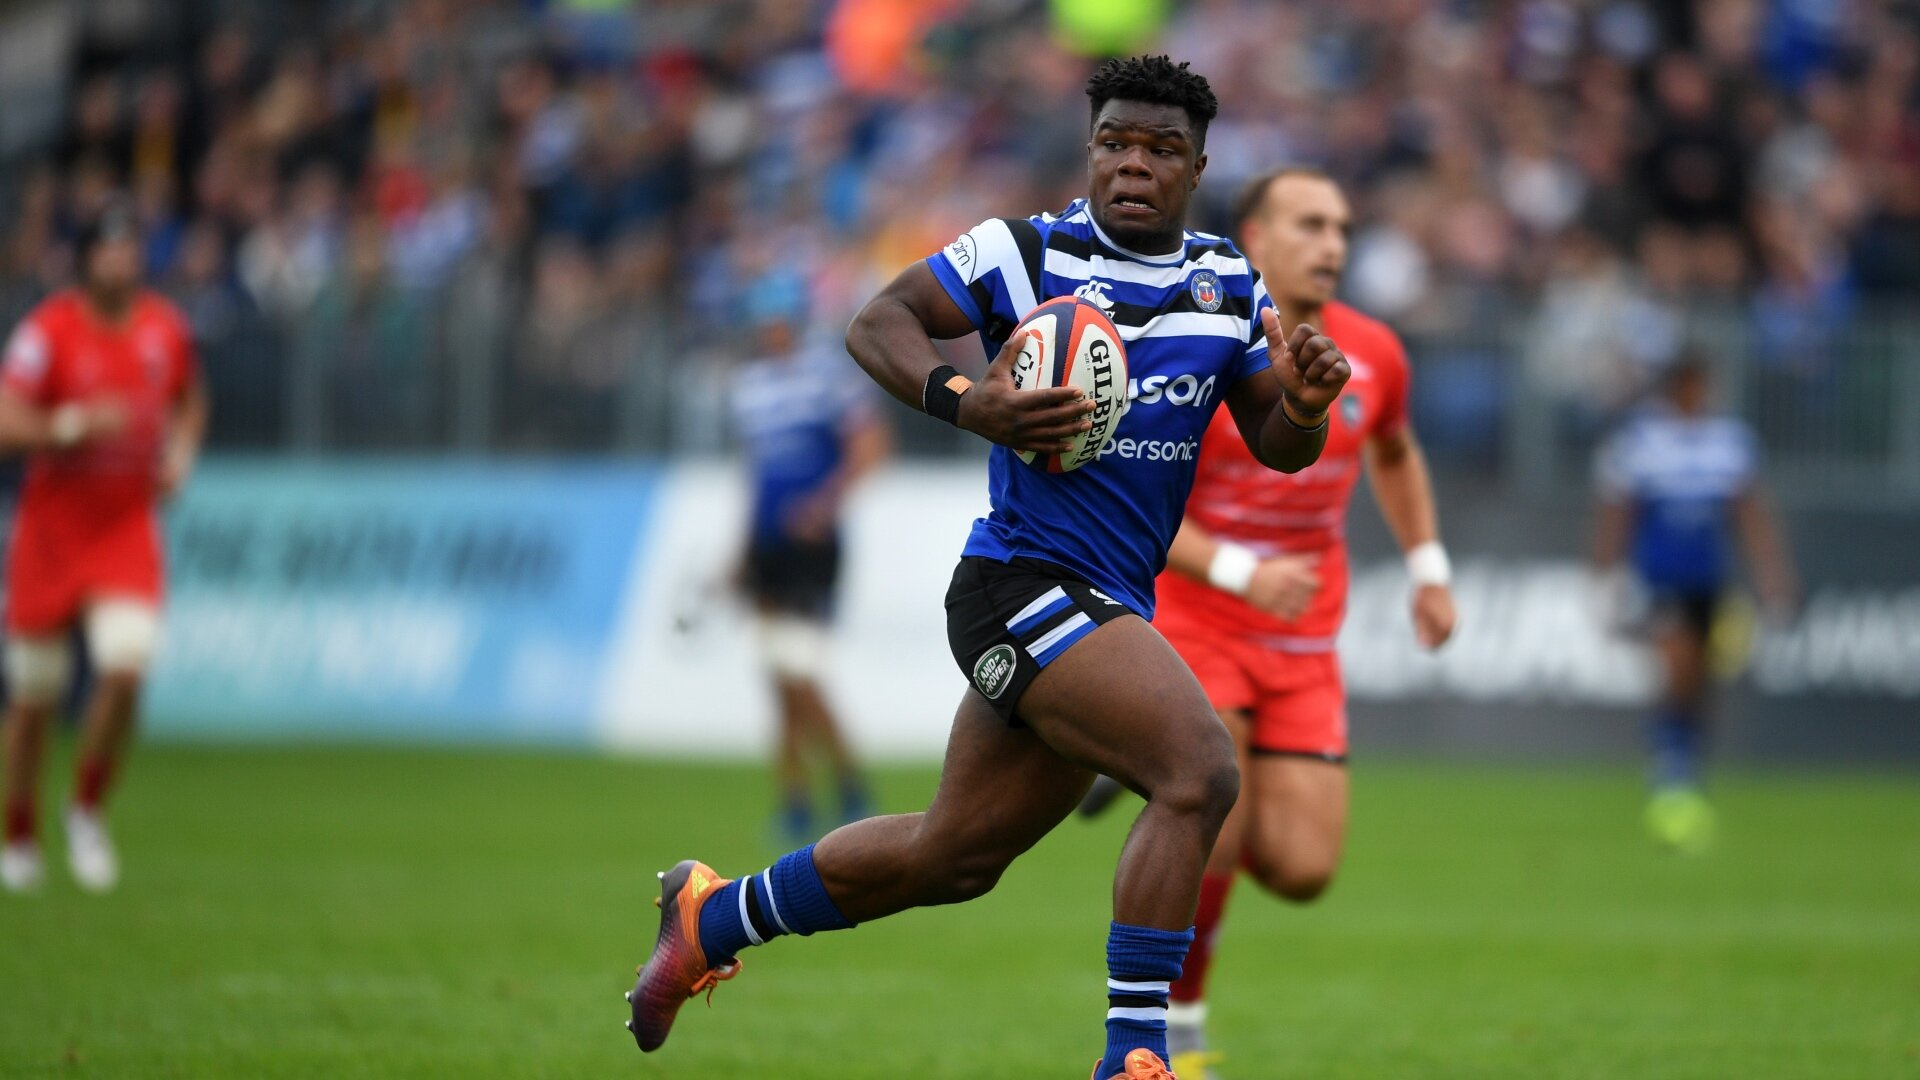 Ex-Bath winger Levi Davis claims 'overwhelmingly positive' reaction after coming out as bisexual